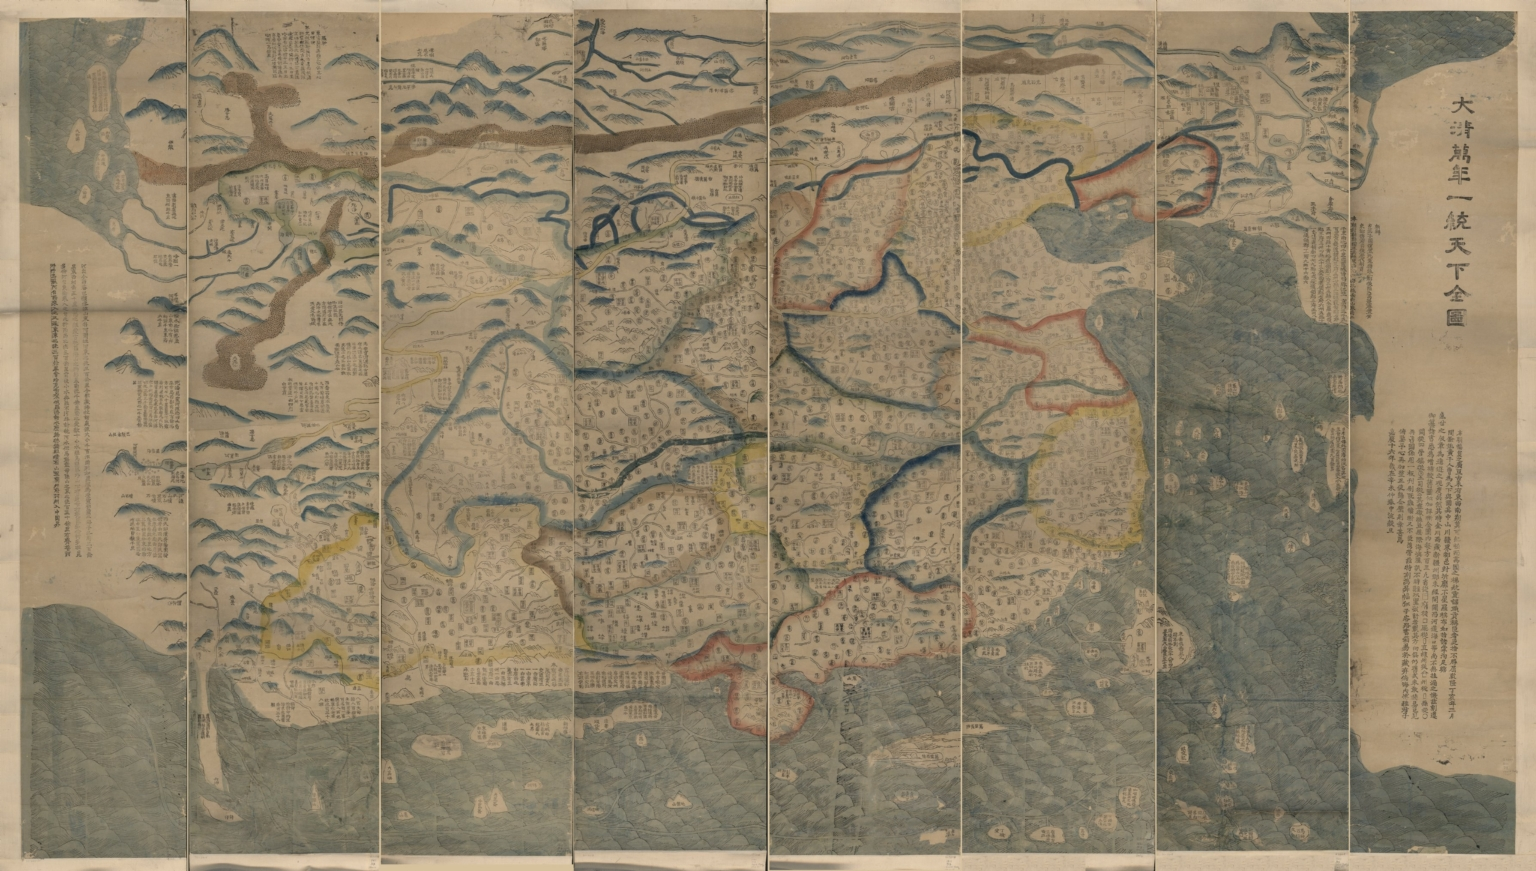 大清萬年一統天下全圖 = The great Qing Dynasty's complete map of all under heaven